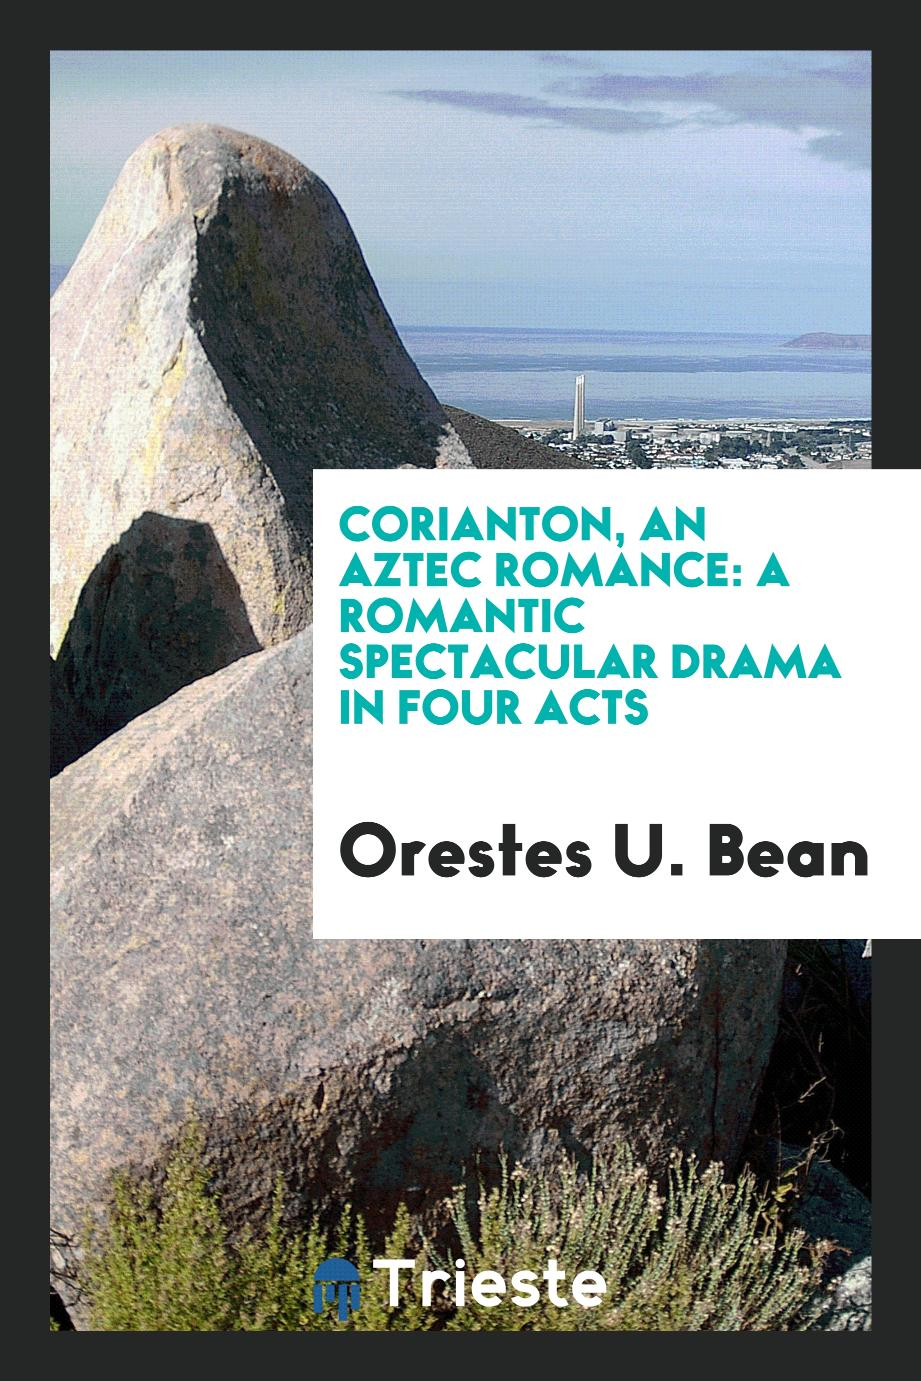 Corianton, an Aztec romance: a romantic spectacular drama in four acts